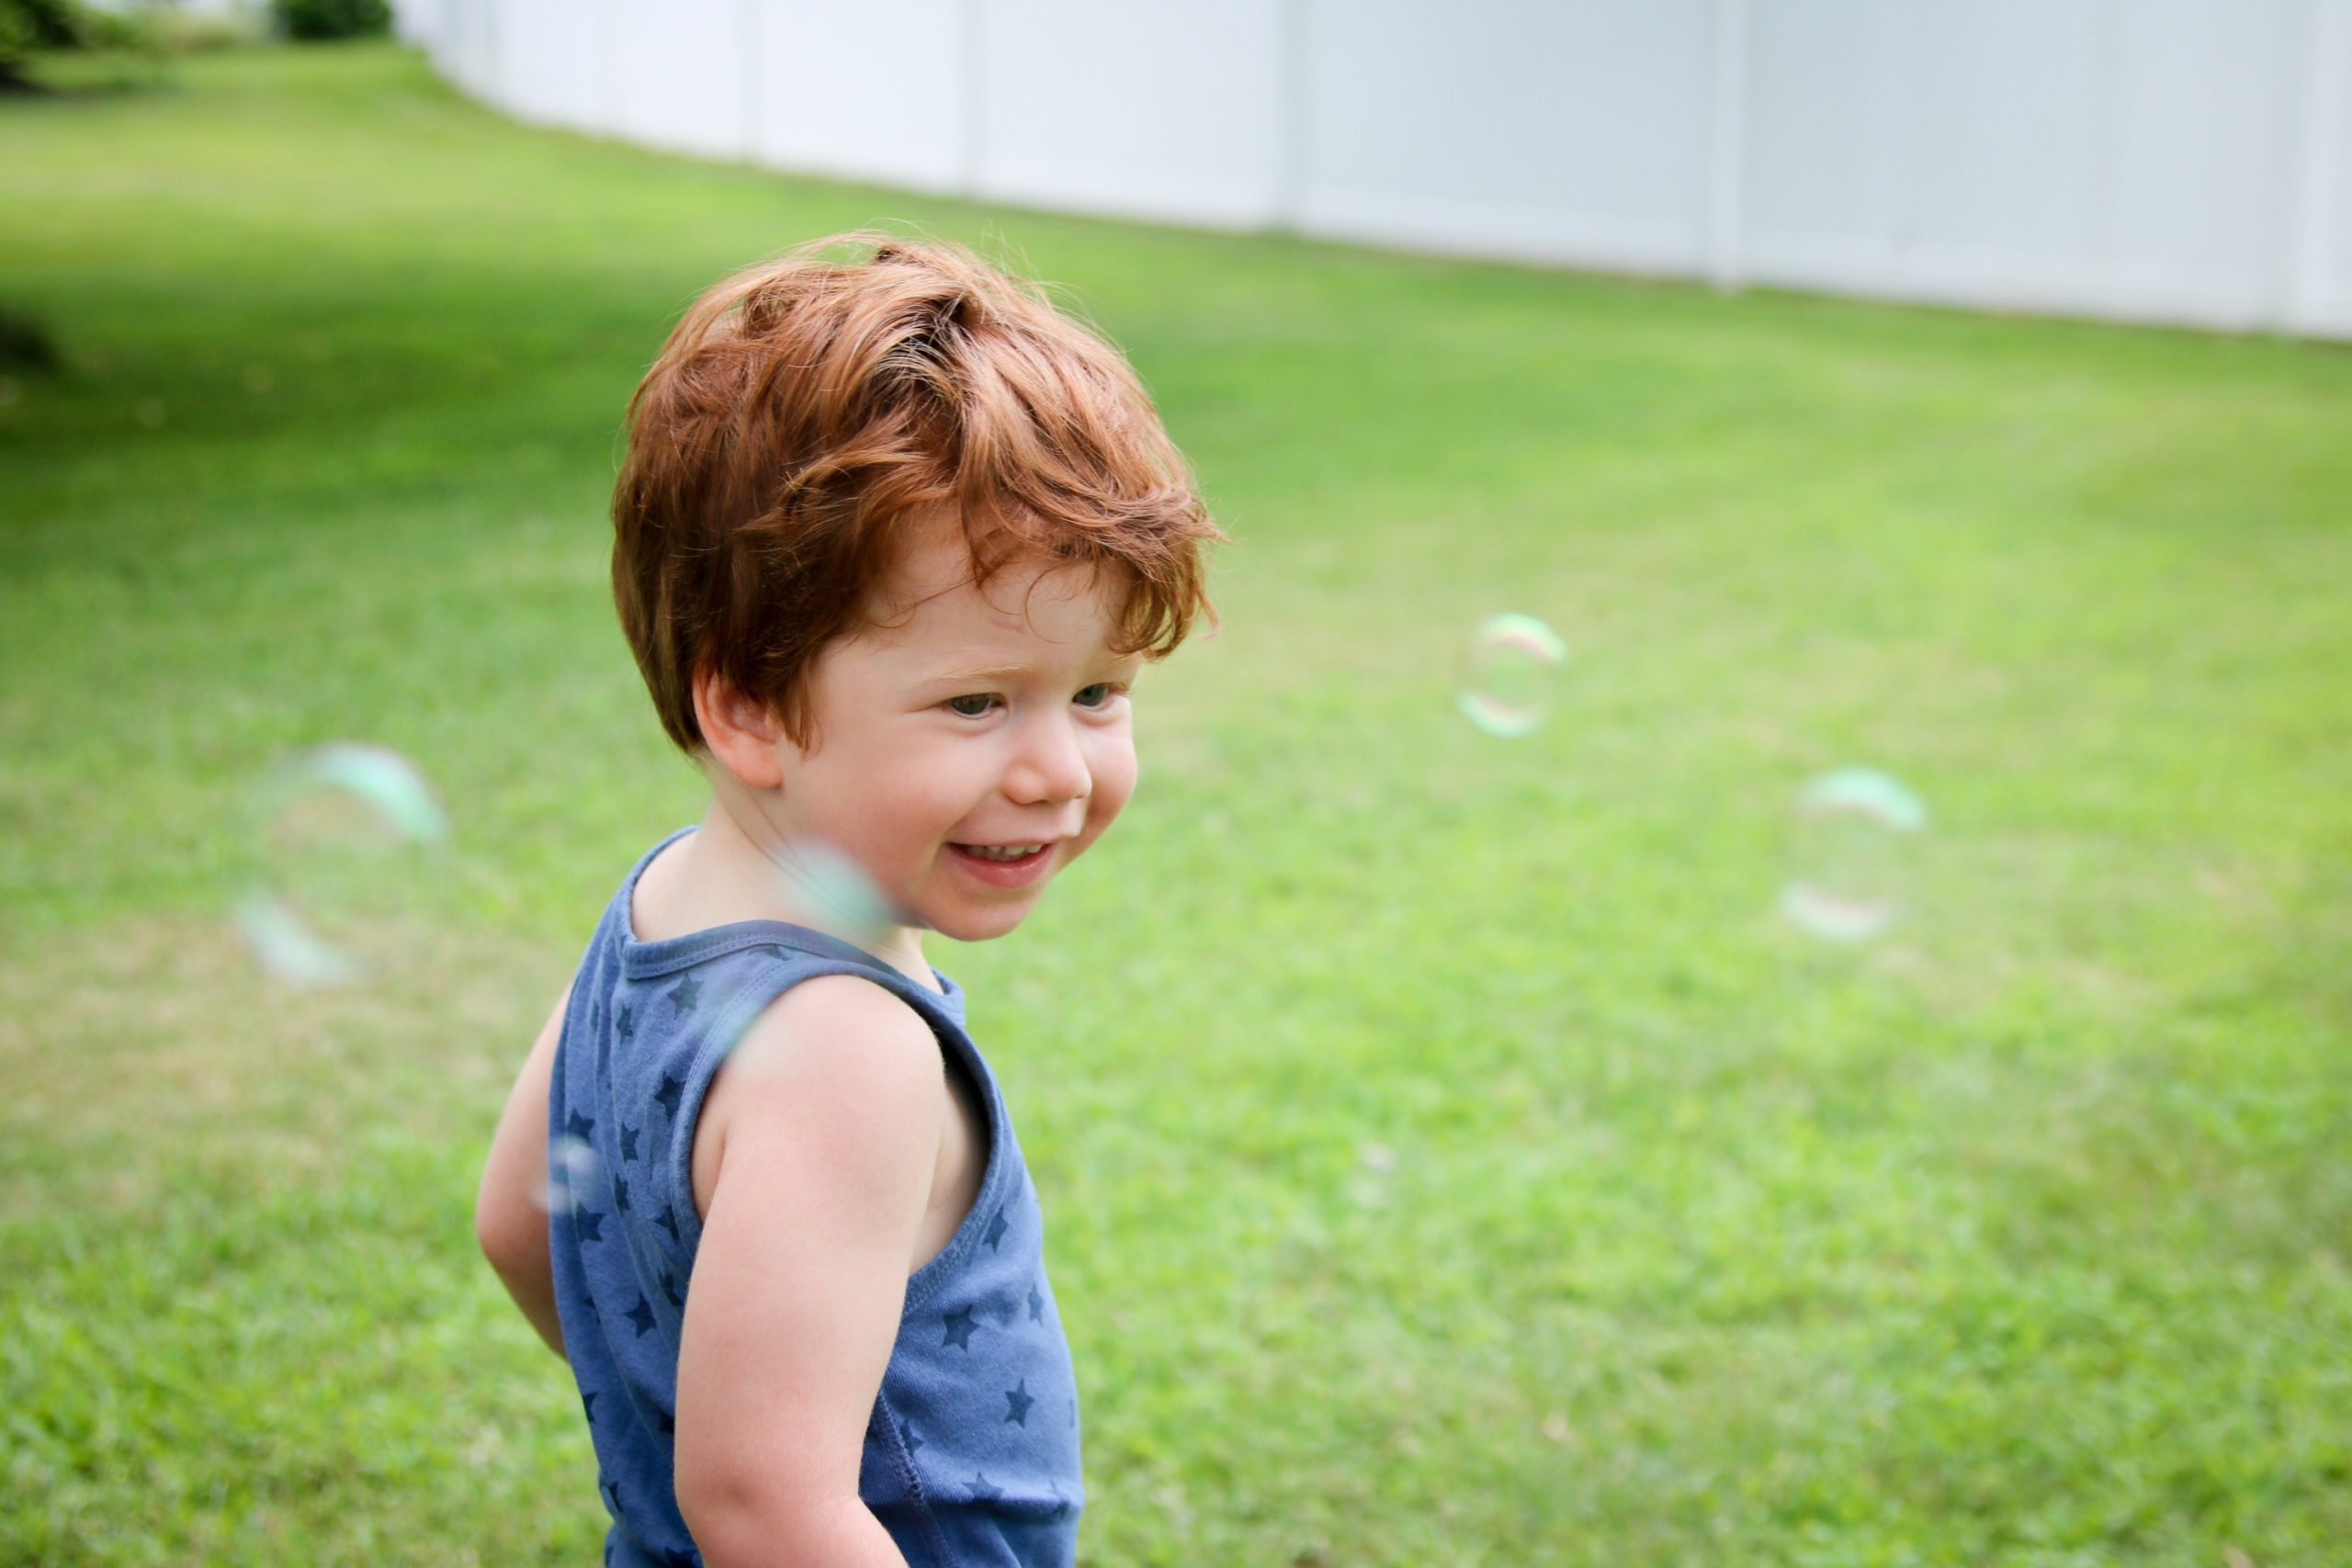 Is Your Child on the Autism Spectrum? Here's How Your Backyard Could Benefit Them: